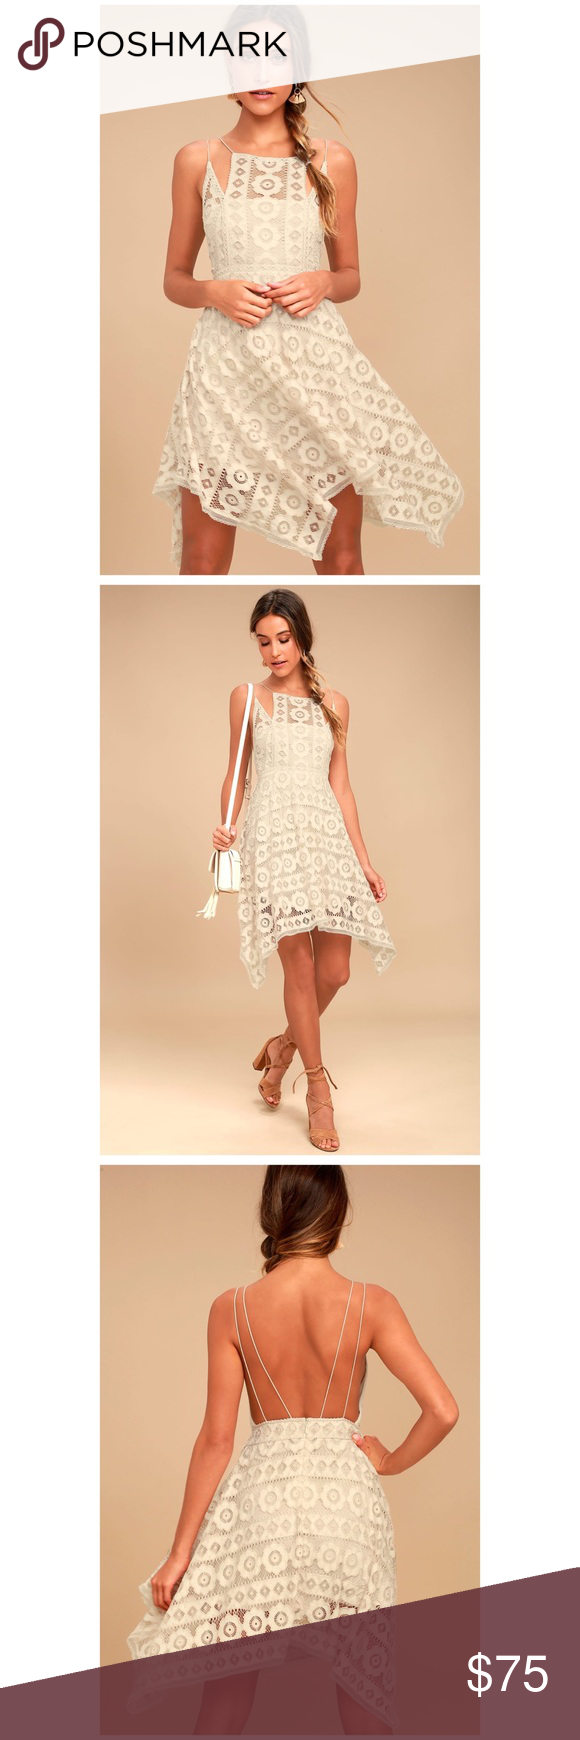 Free People Honey Lace Dress The Free People Just Like Honey Beige Lace Dress is as sweet-as-can-be! Romantic lace overlay forms this sleeveless dress with a unique, high neckline, and crochet lace princess seams. Skirt falls to flirty length with handkerchief hem. Braided double straps and hidden back zipper/clasp. Lined--Brand new. Self: 72% Nylon, 28% Cotton. Lining: 100% Rayon. Hand Wash Cold.                                                   NO TRADES Free People Dresses Midi